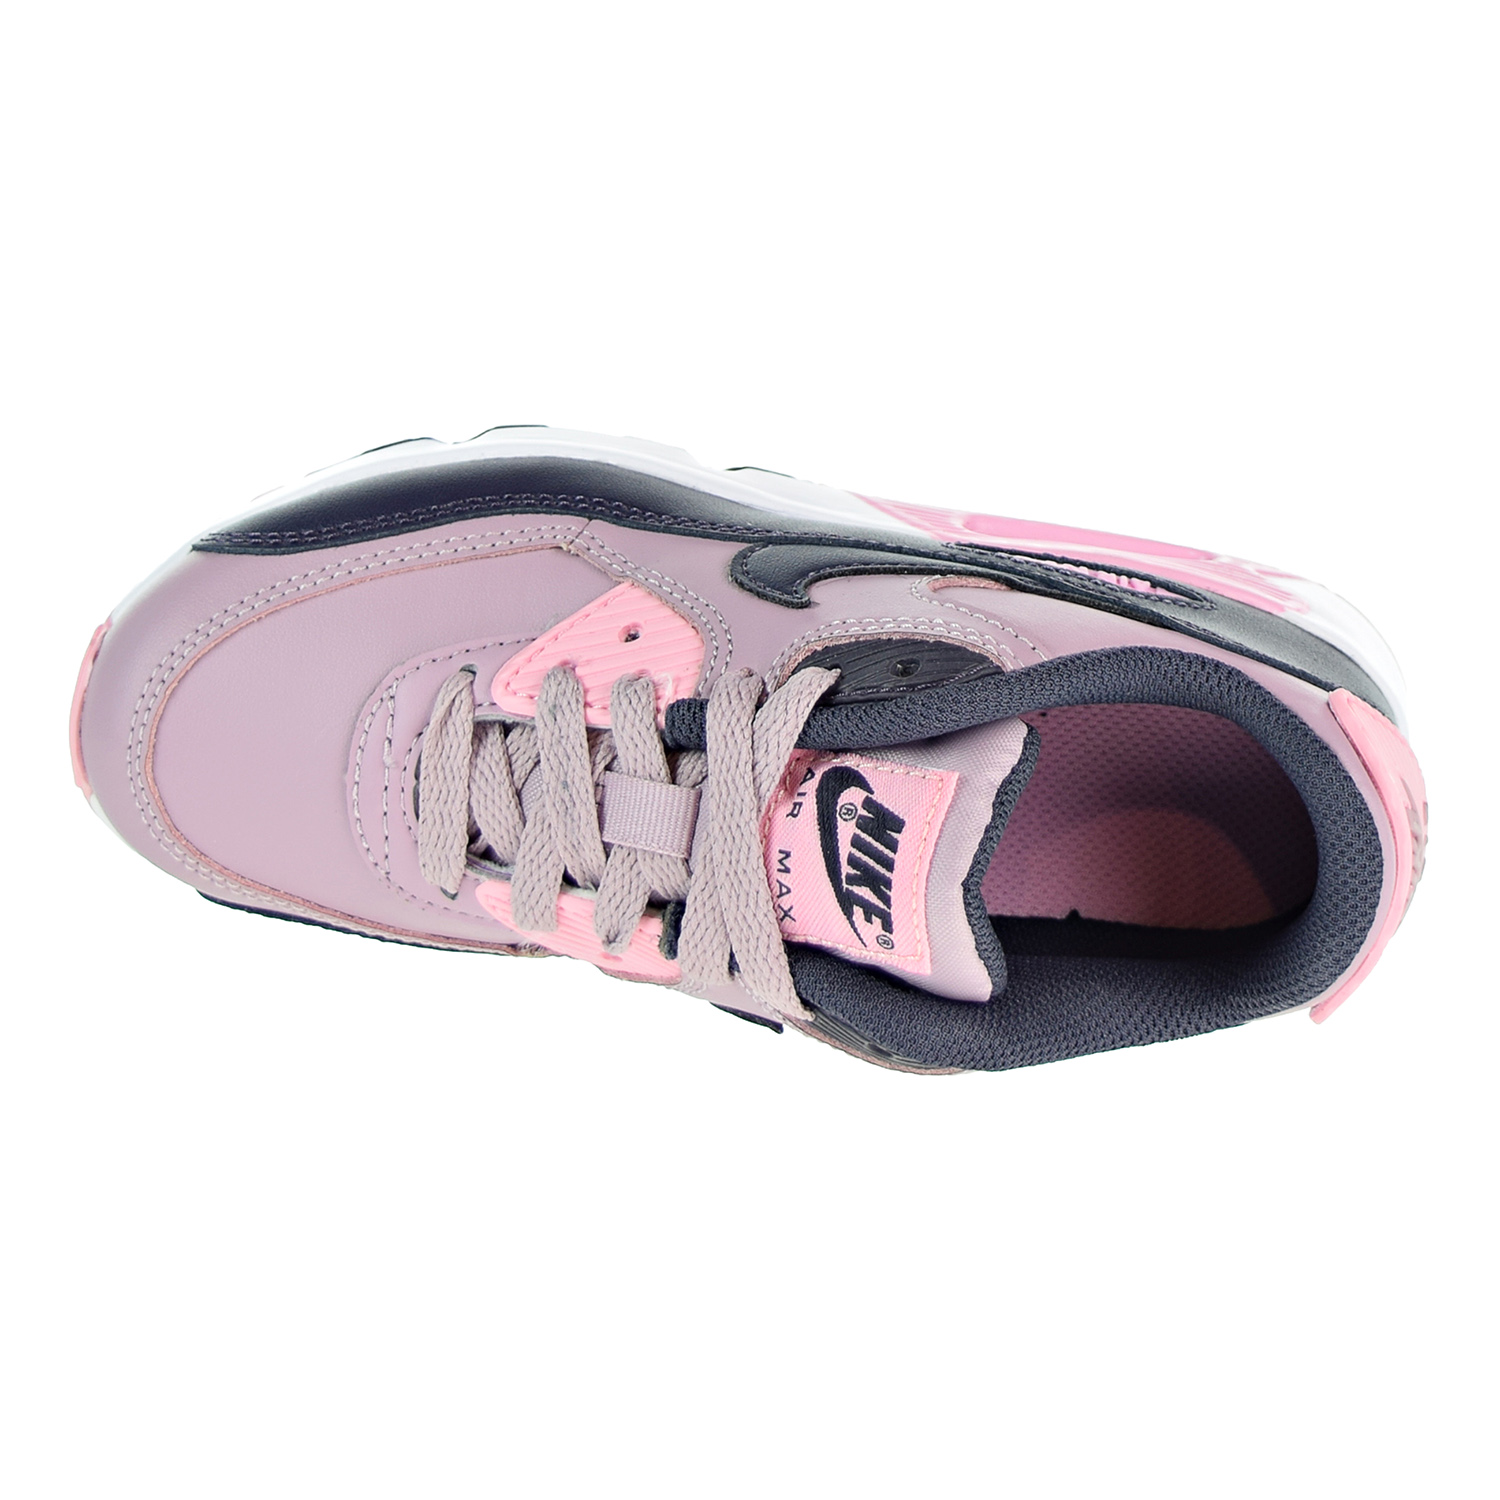 super popular d133a 837dc Nike Air Max 90 LTR Big Kids Shoes Pink 833377-602